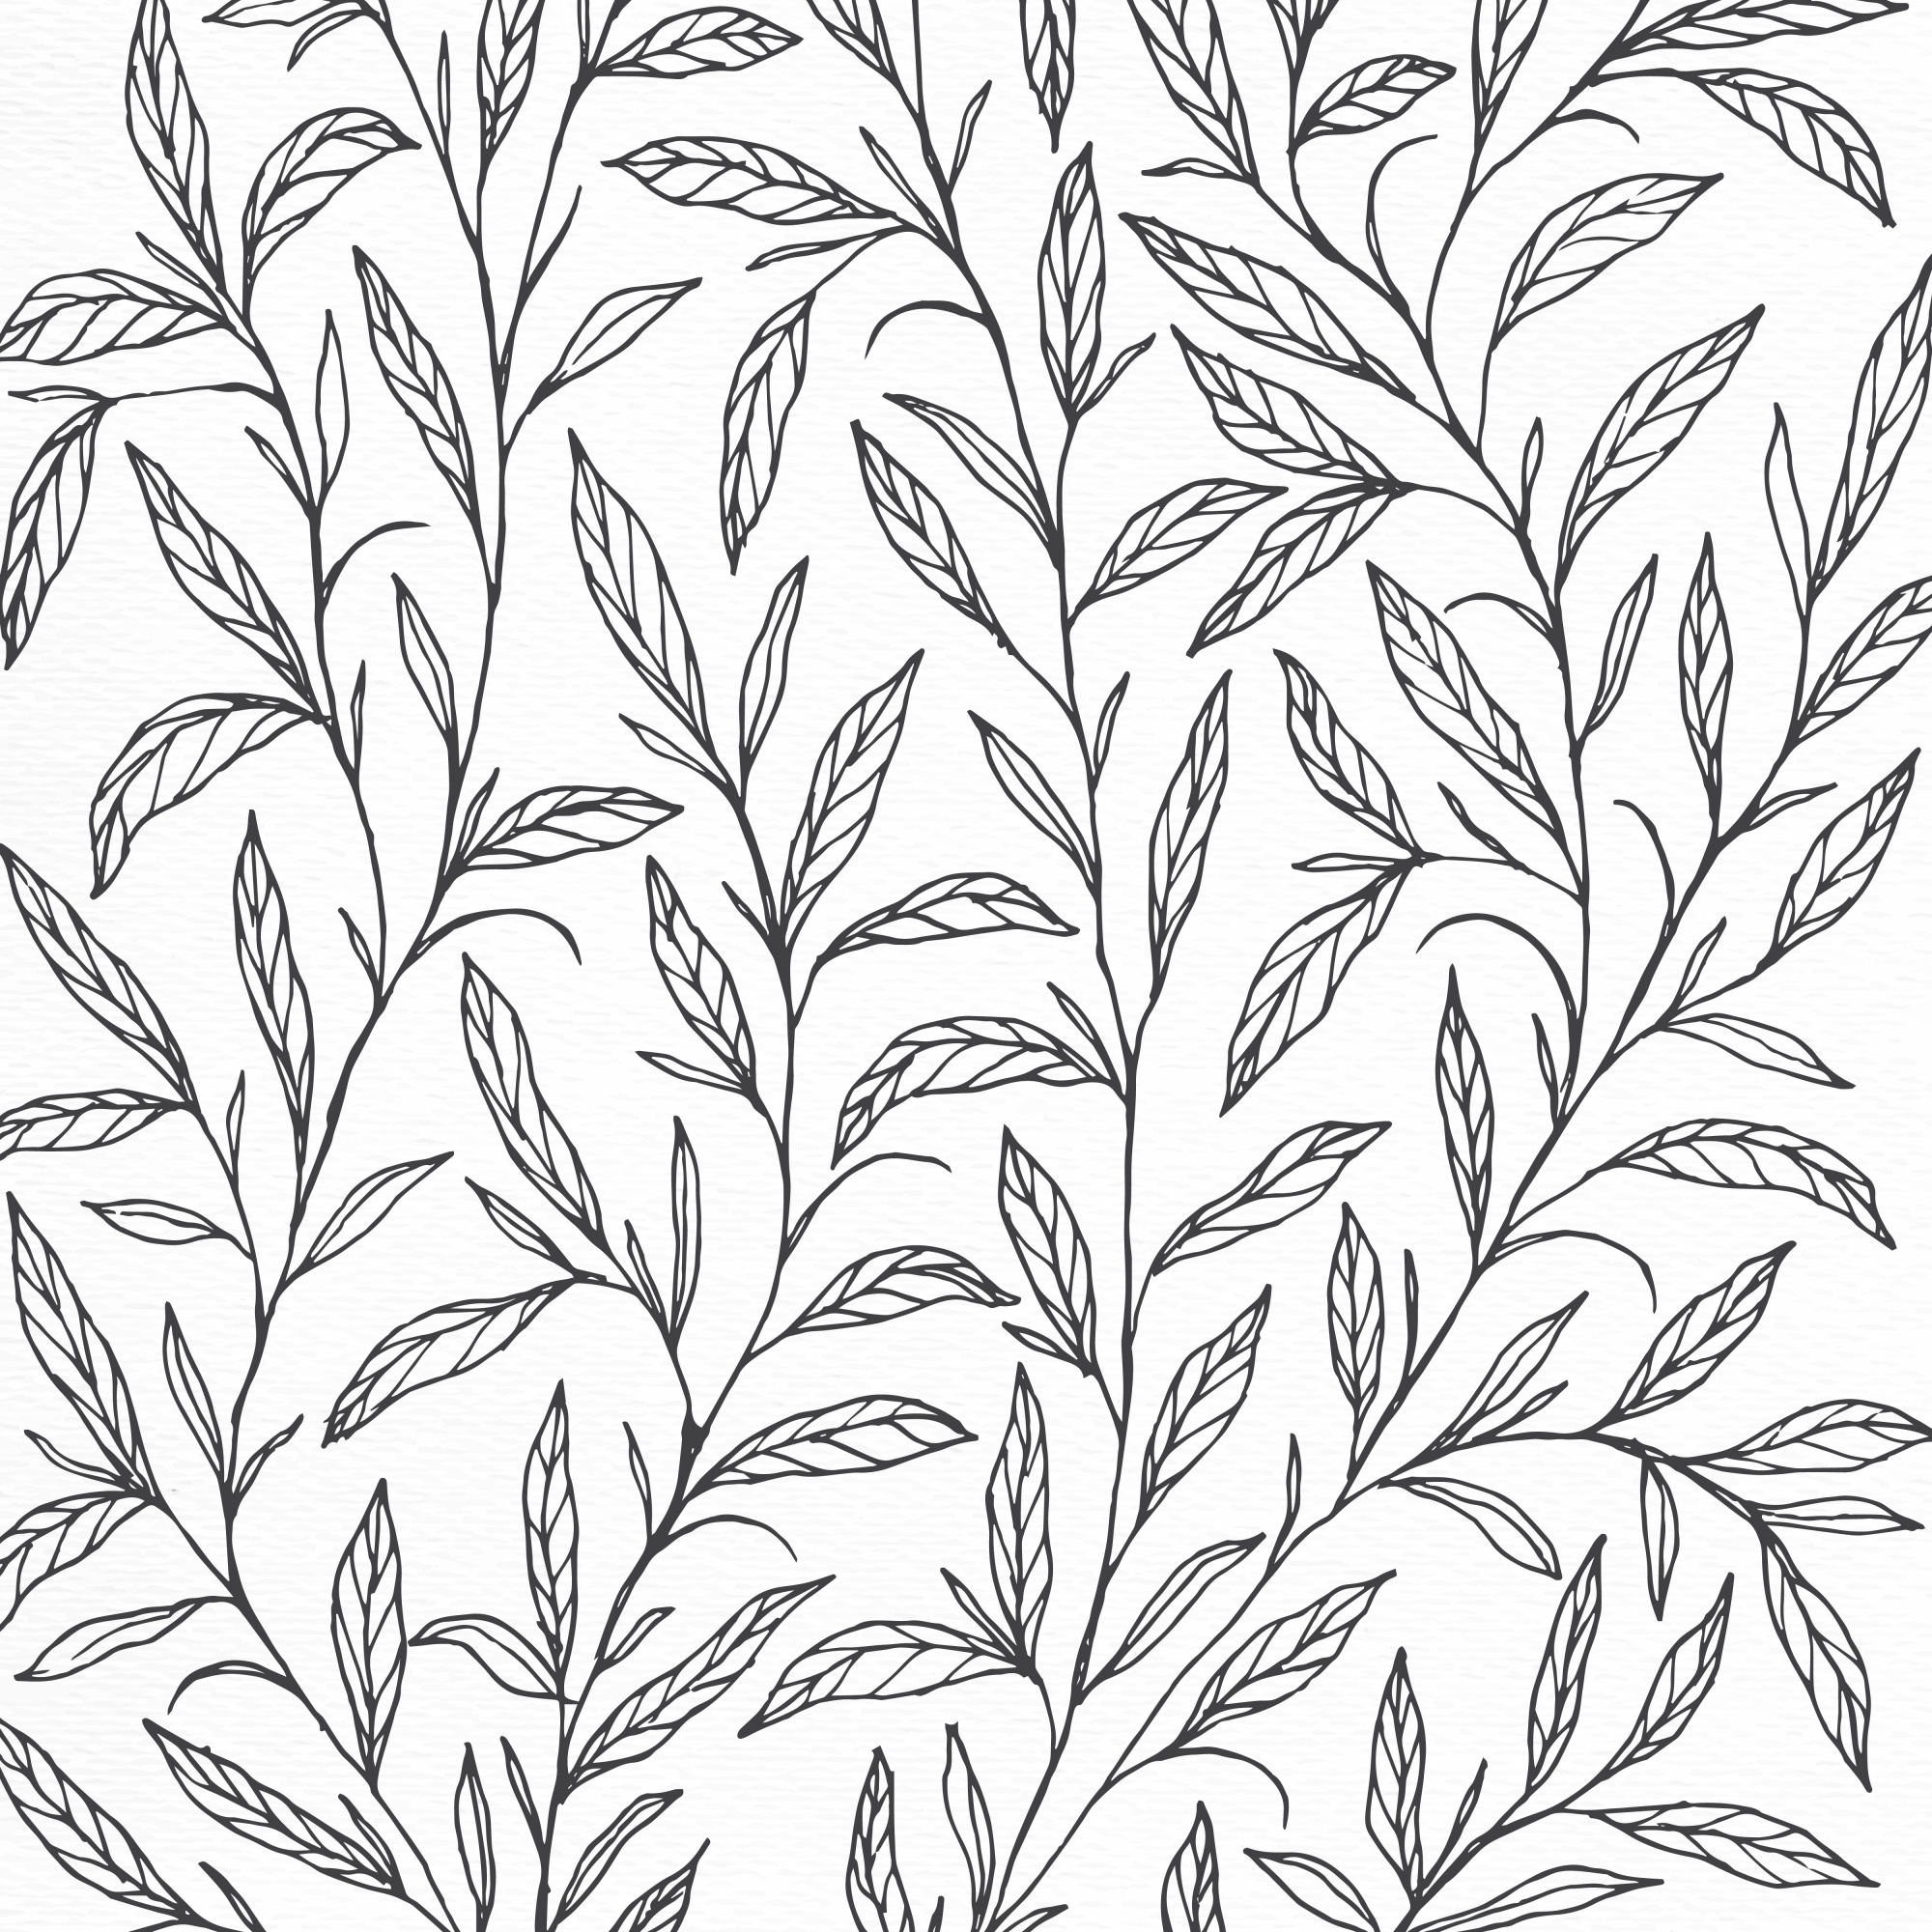 Background design with hand drawn botanical illustration